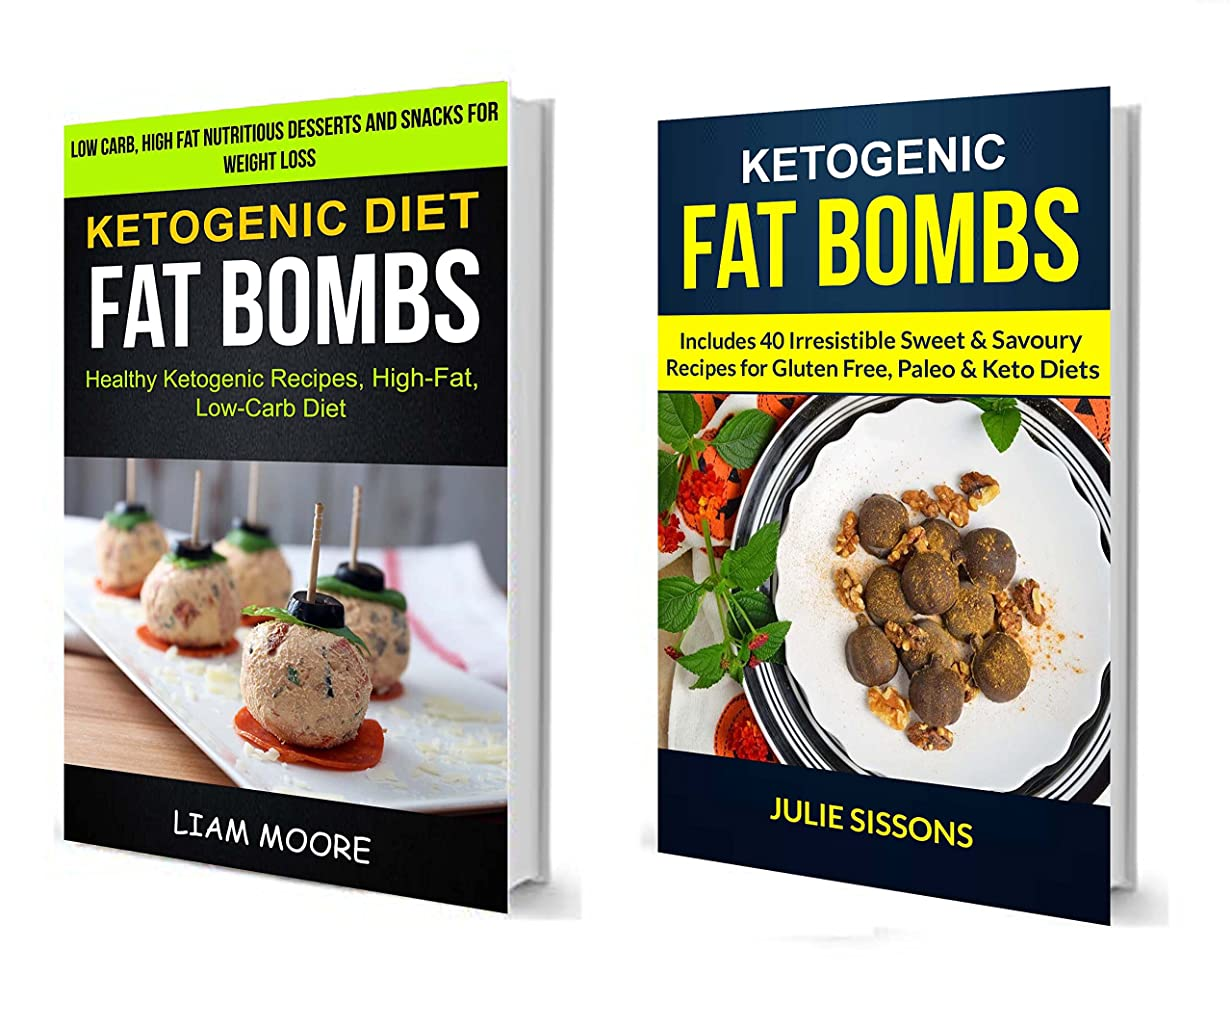 Ketogenic Diet: Fat Bombs: (2 in 1): Includes Irresistible Sweet & Savoury Recipes For Gluten Free, Paleo & Keto Diets (Healthy Ketogenic Recipes, High Fat, Low Carb Diet) (English Edition)